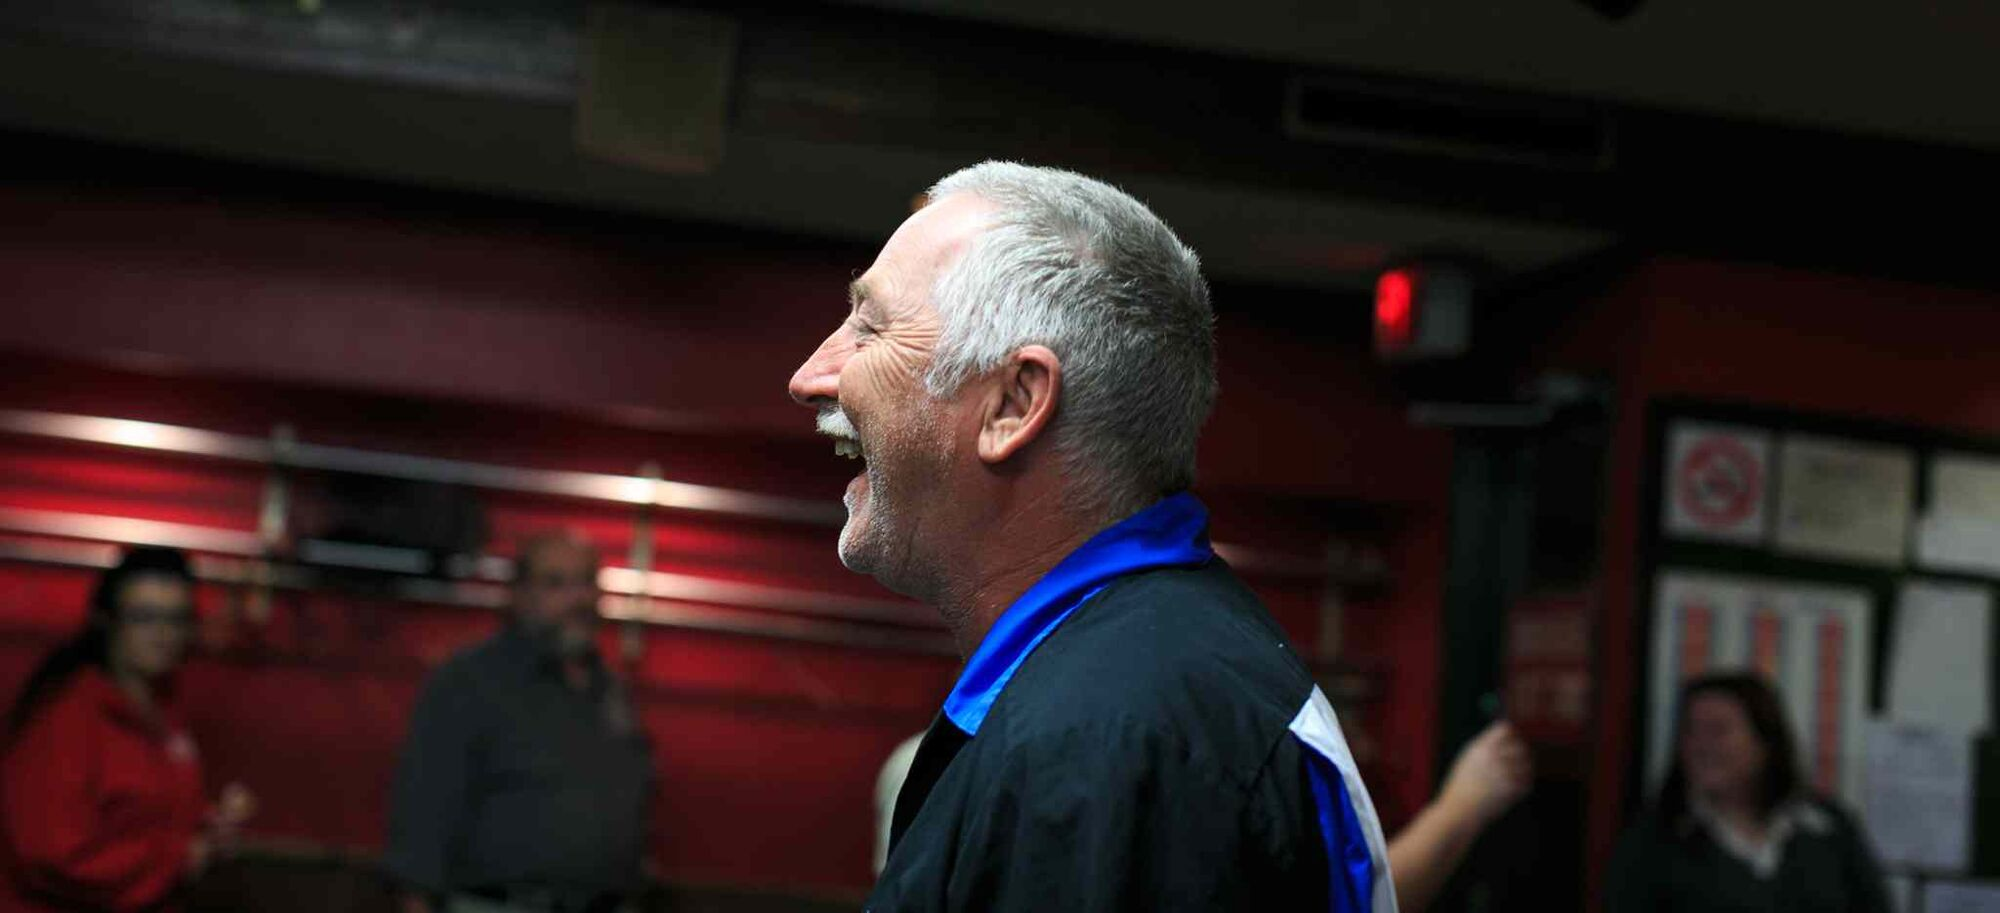 Dan Cady laughs during a game of darts at the St. James Legion off Portage. (Melissa Tait / Winnipeg Free Press)